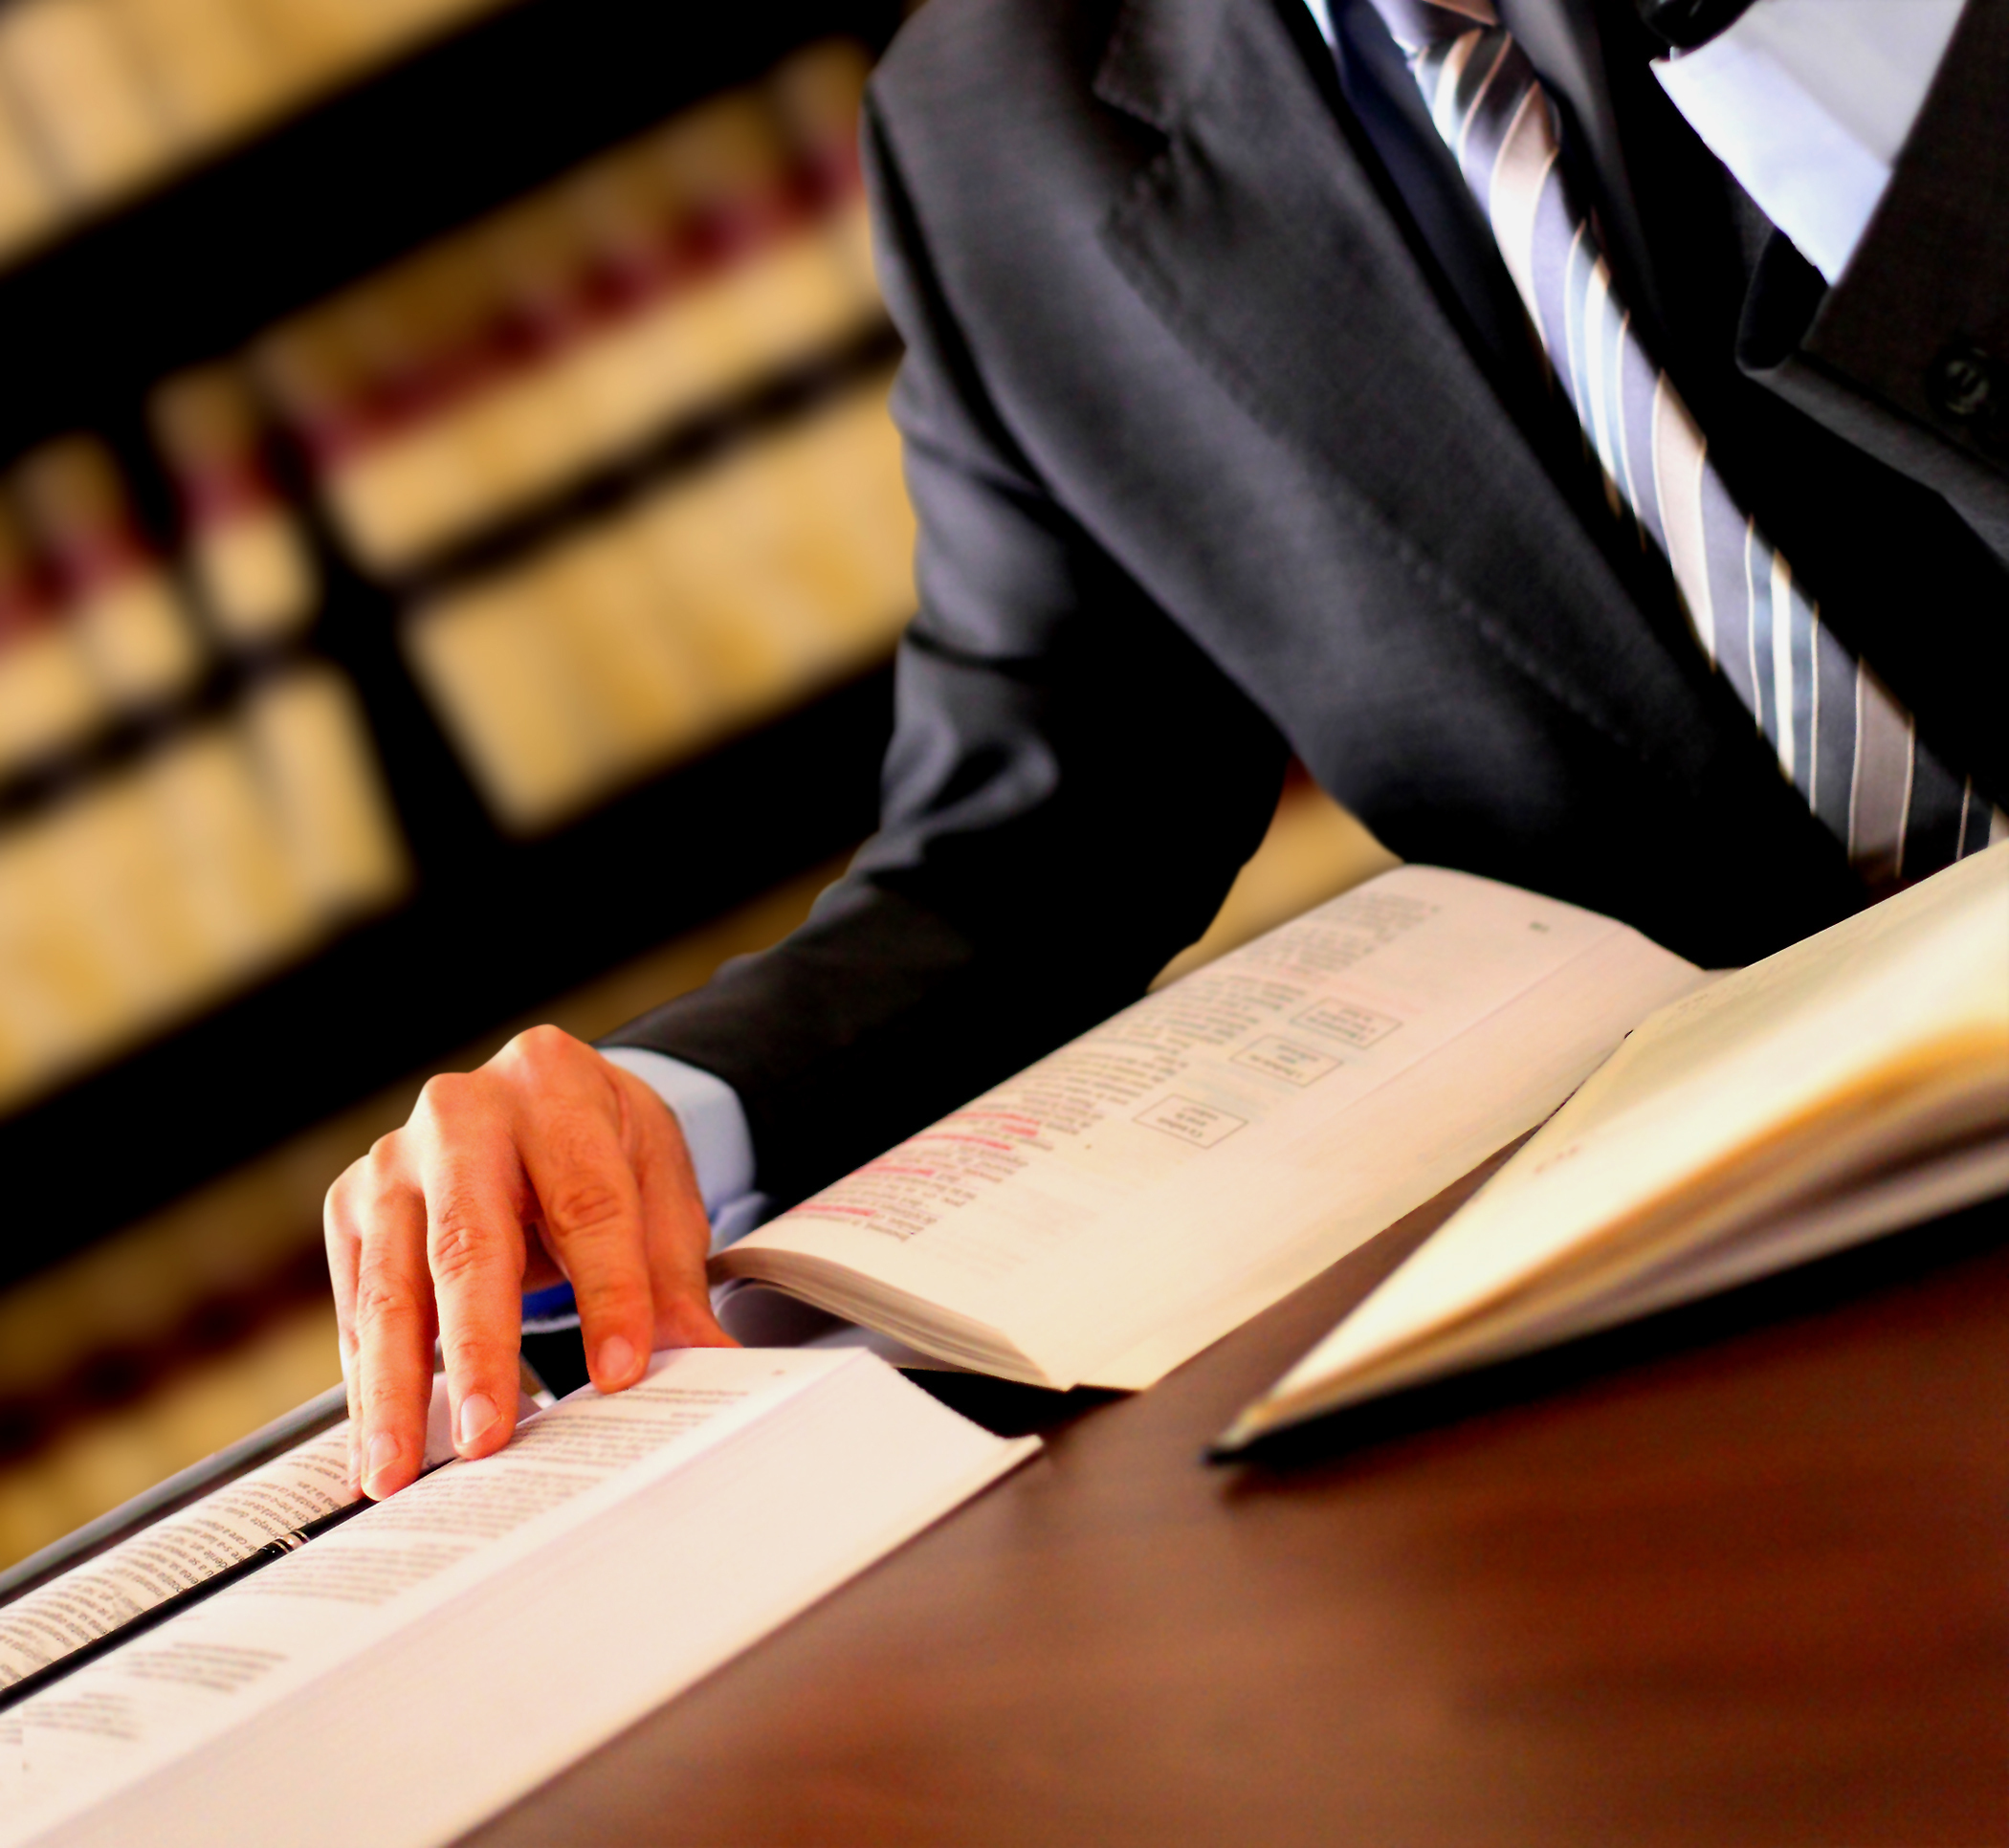 How To Select Criminal Defense Attorney In New York 7 Steps